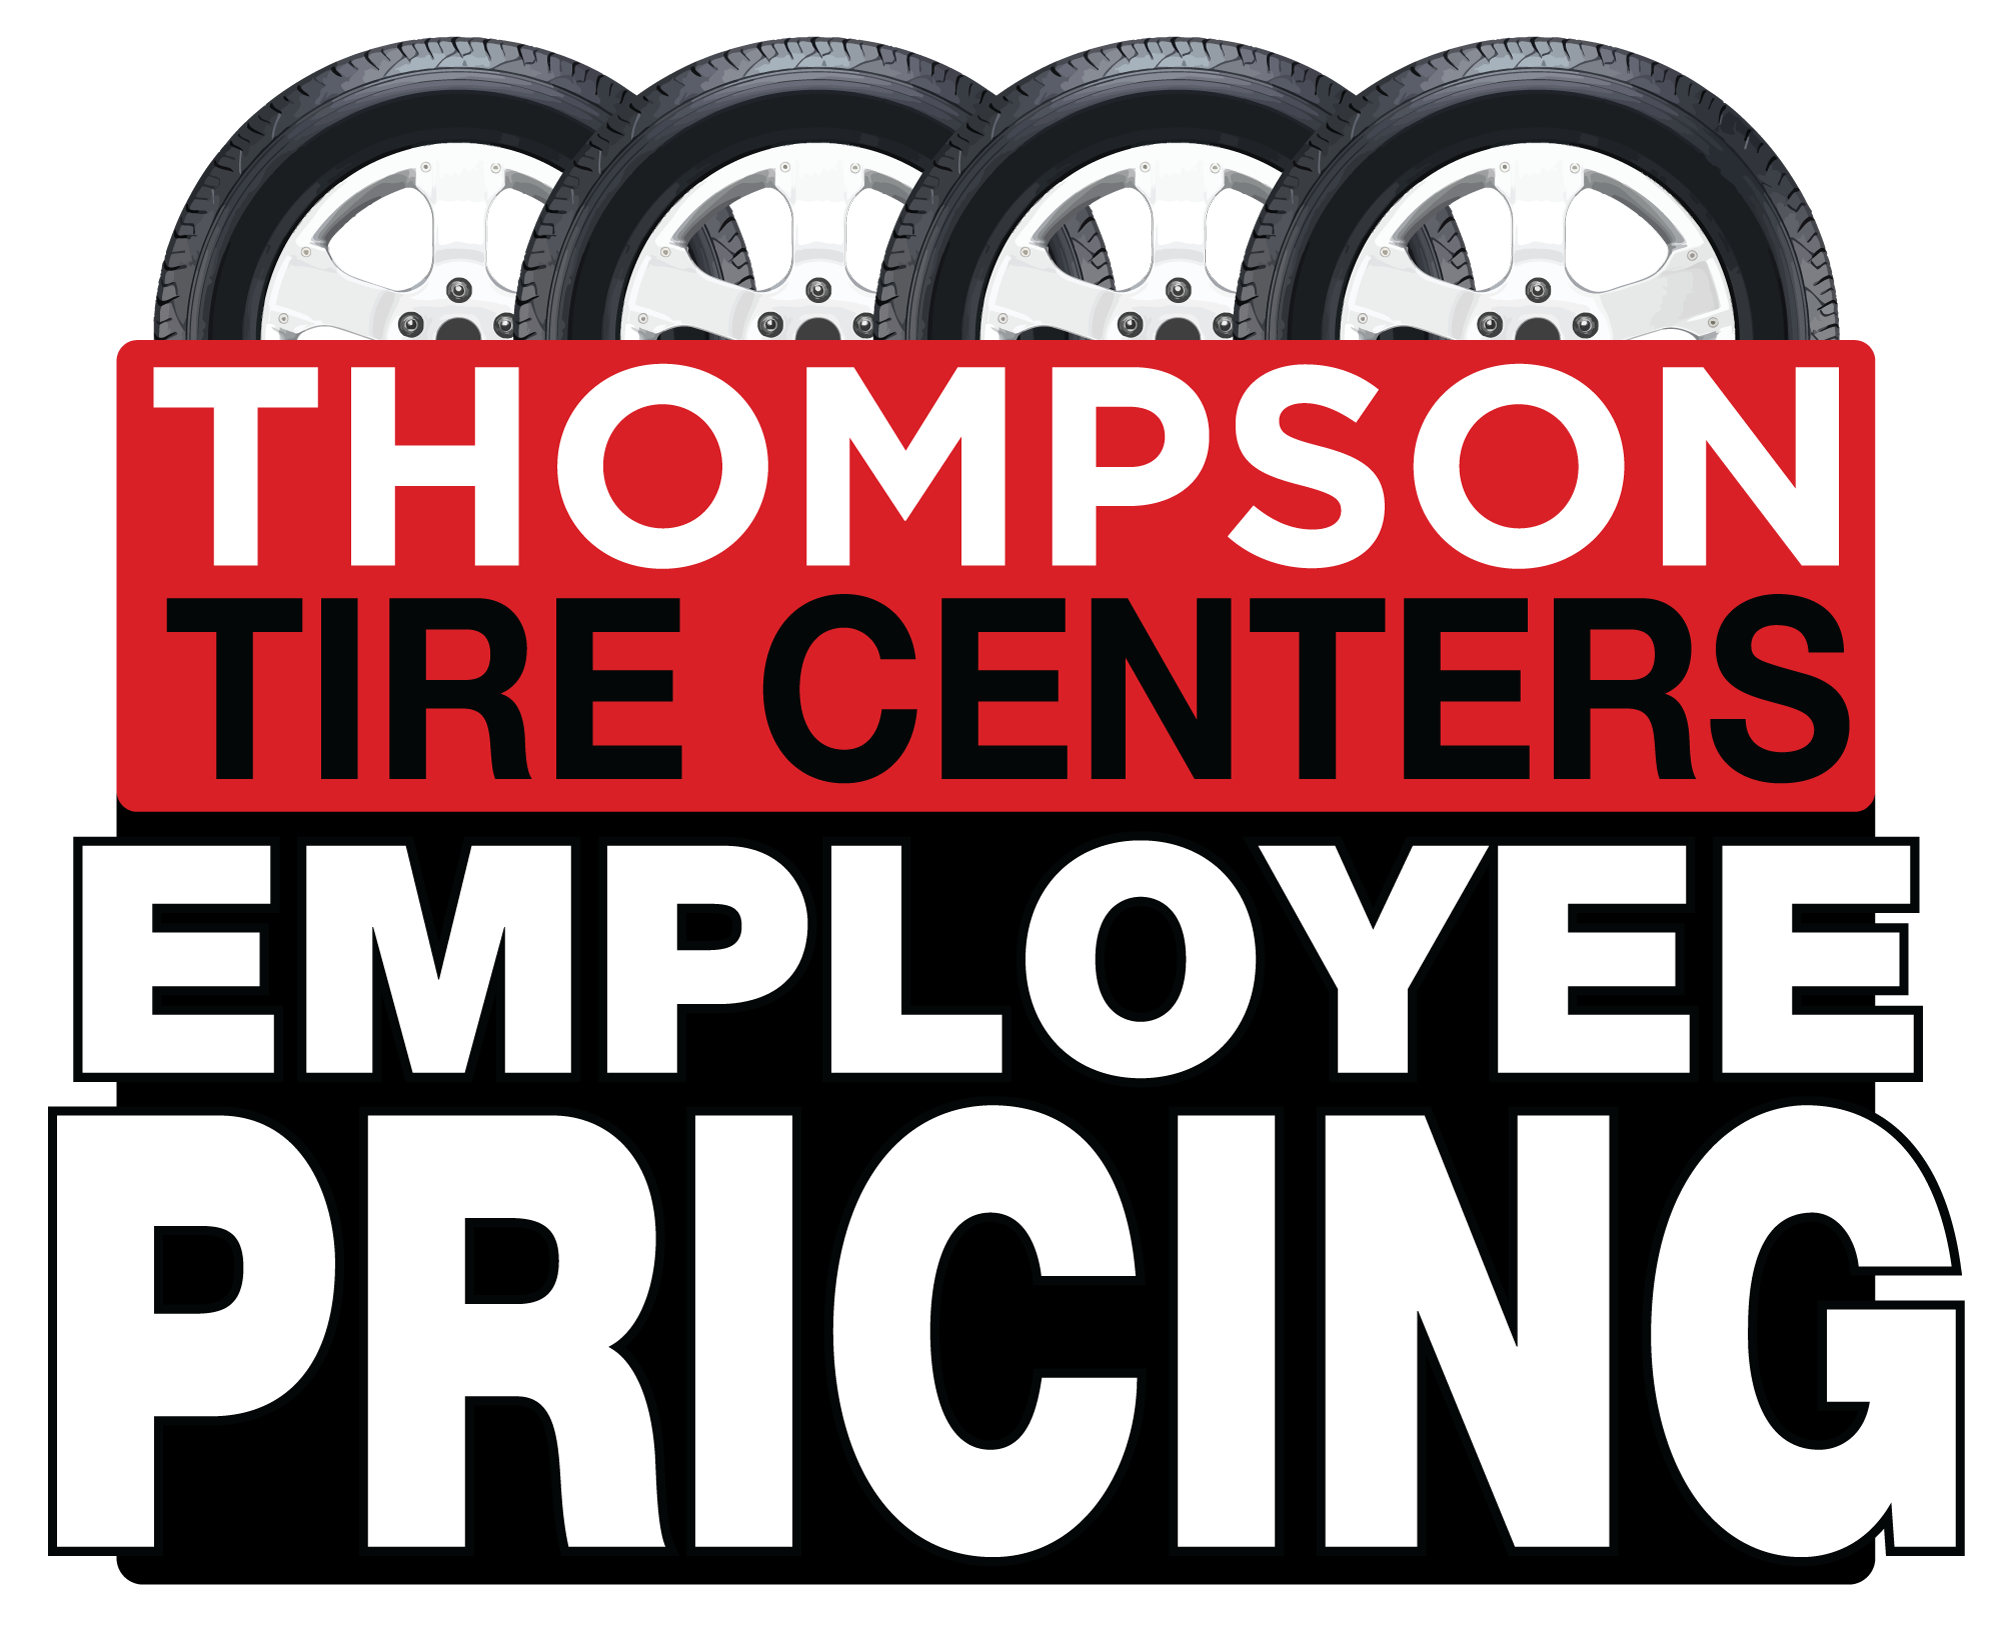 Toyota Tire Sale >> Toyota Tire Sale Buy 3 Tires Get 1 Free At Thompson Toyota Tire